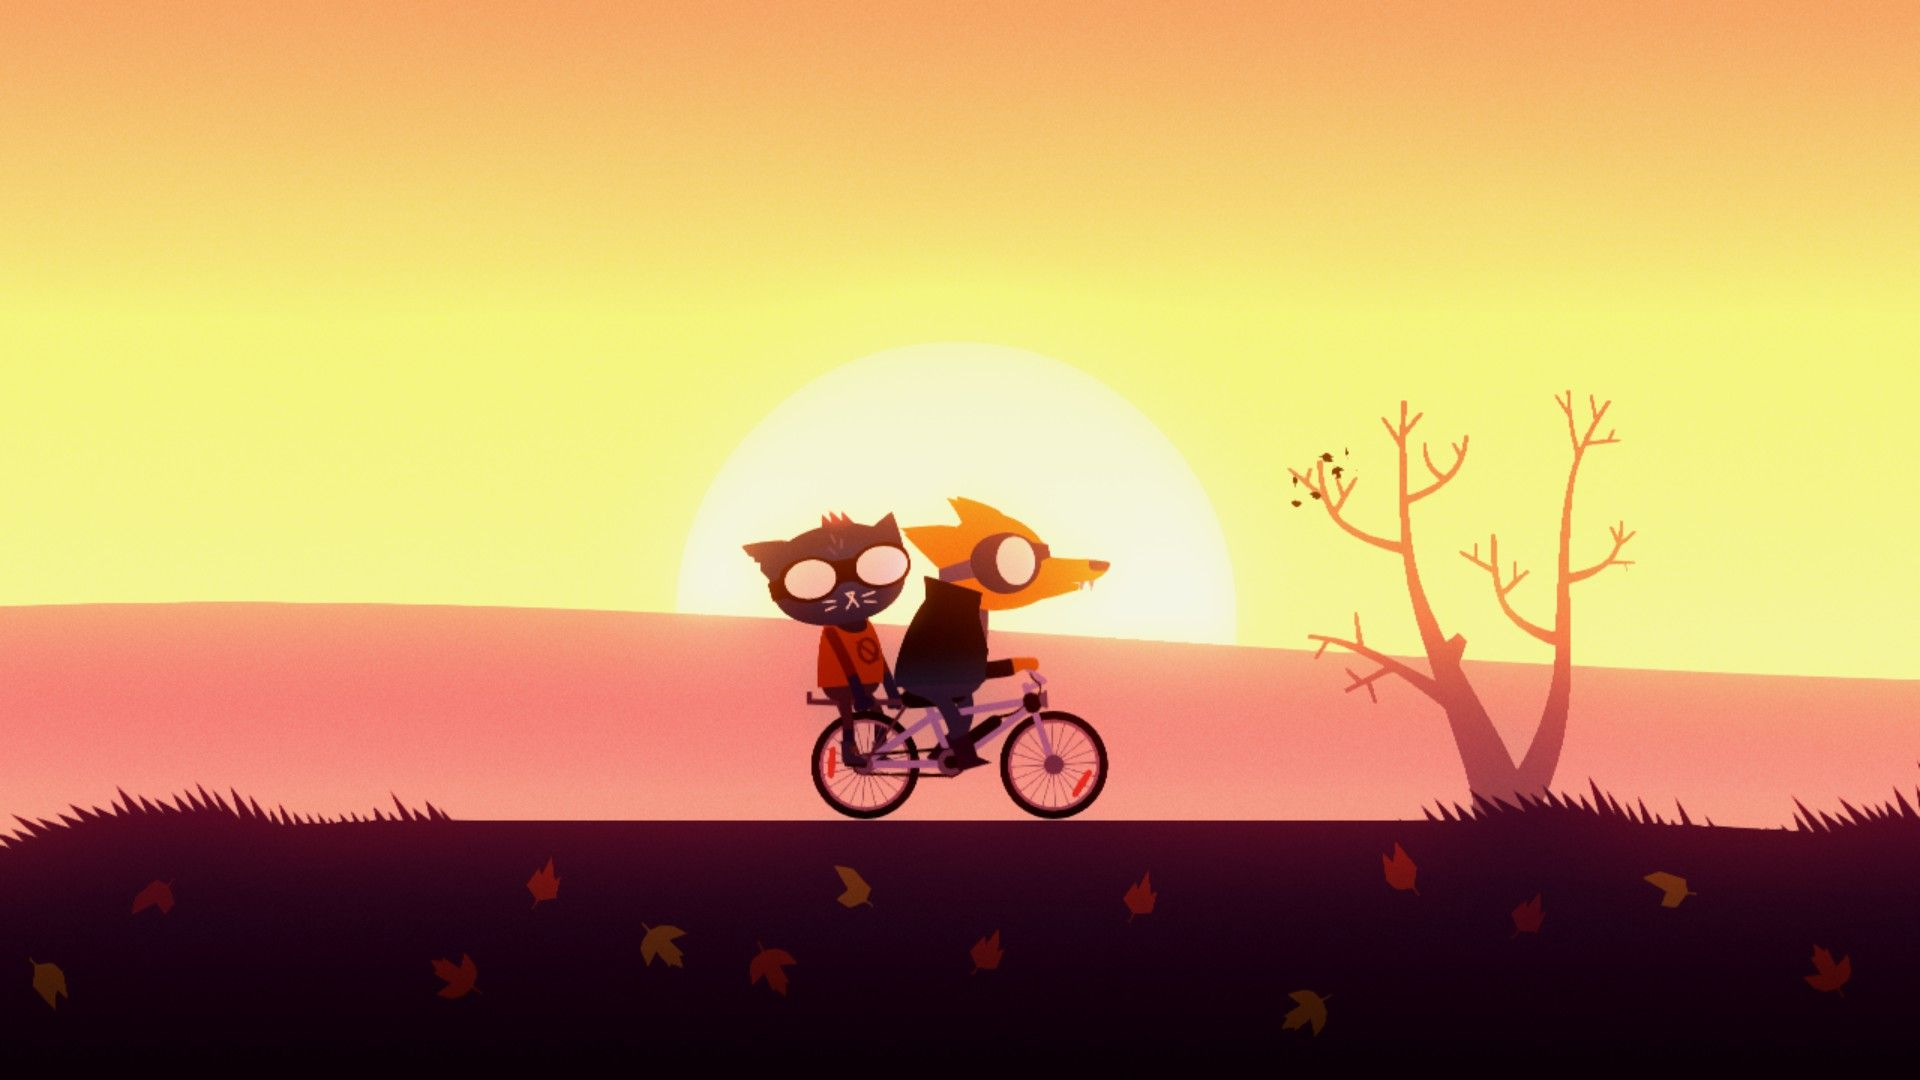 Night in the Woods PC Wallpaper